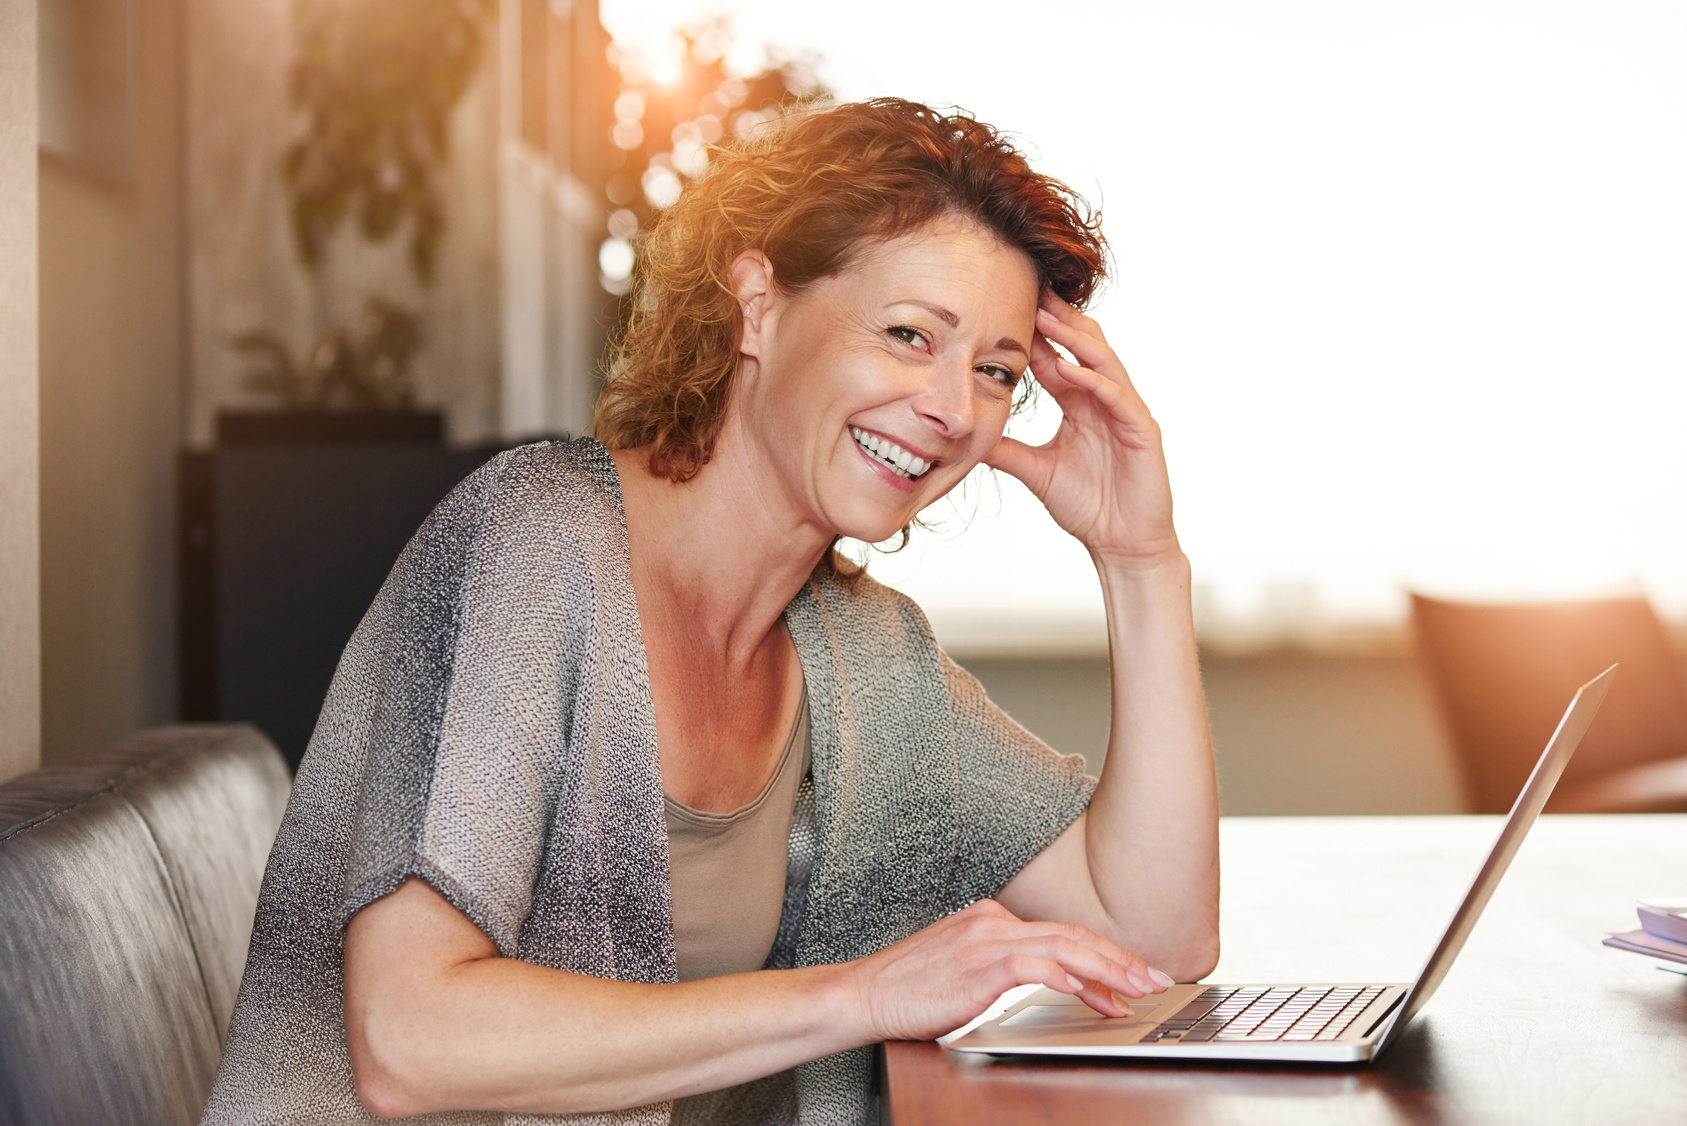 Woman sitting at table with smiling  with laptop